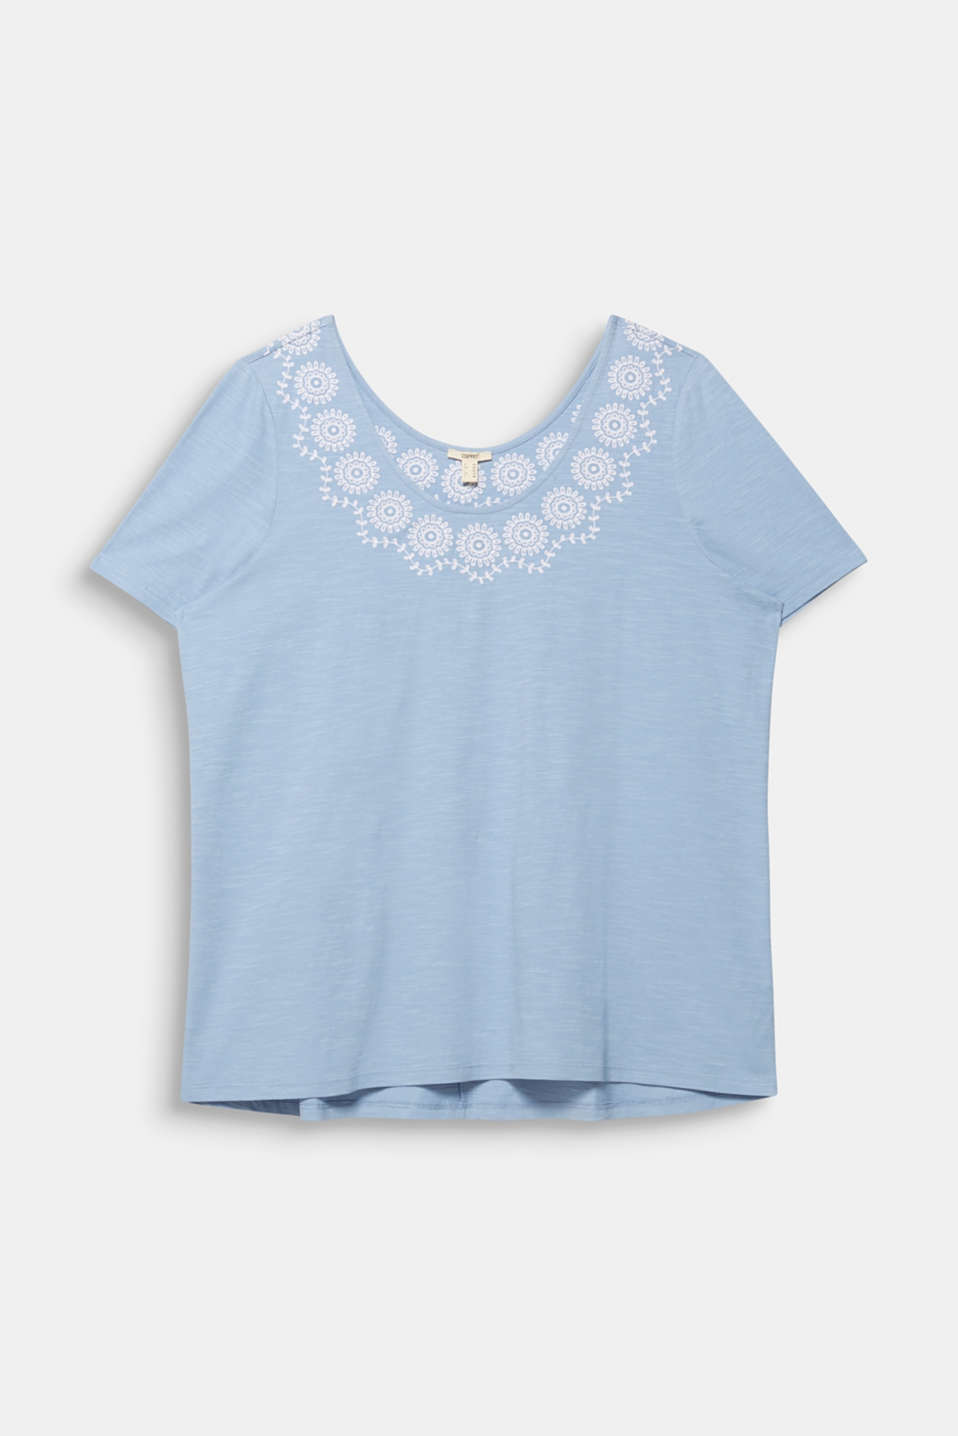 CURVY top with embroidery, LIGHT BLUE, detail image number 4